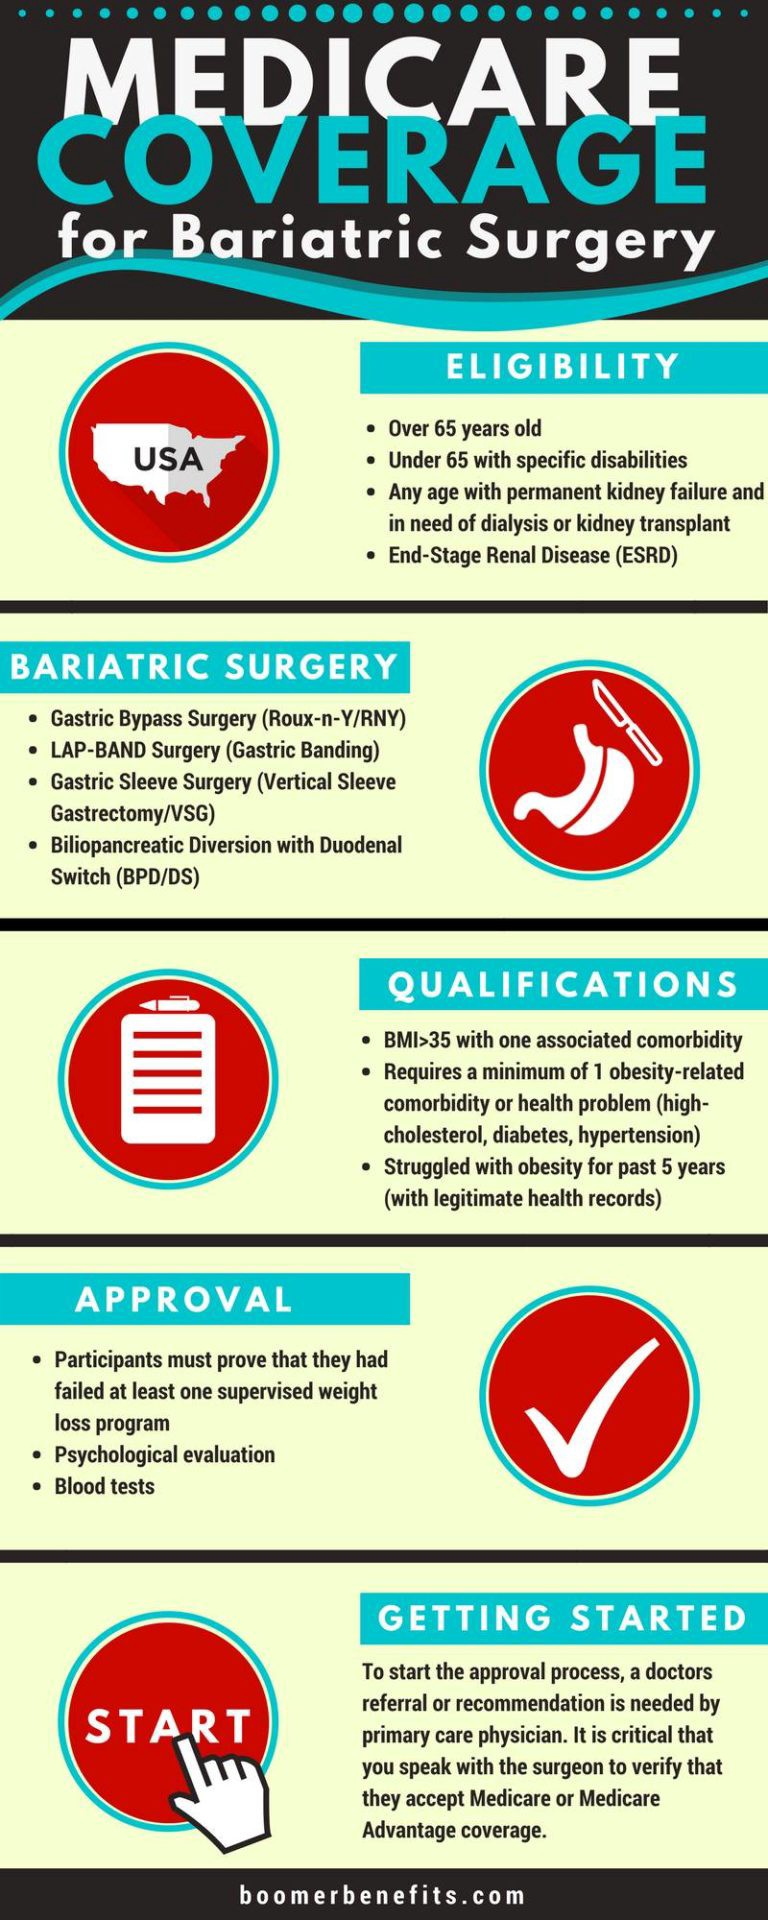 Medicare Coverage for Bariatric Surgery: The Complete Guide